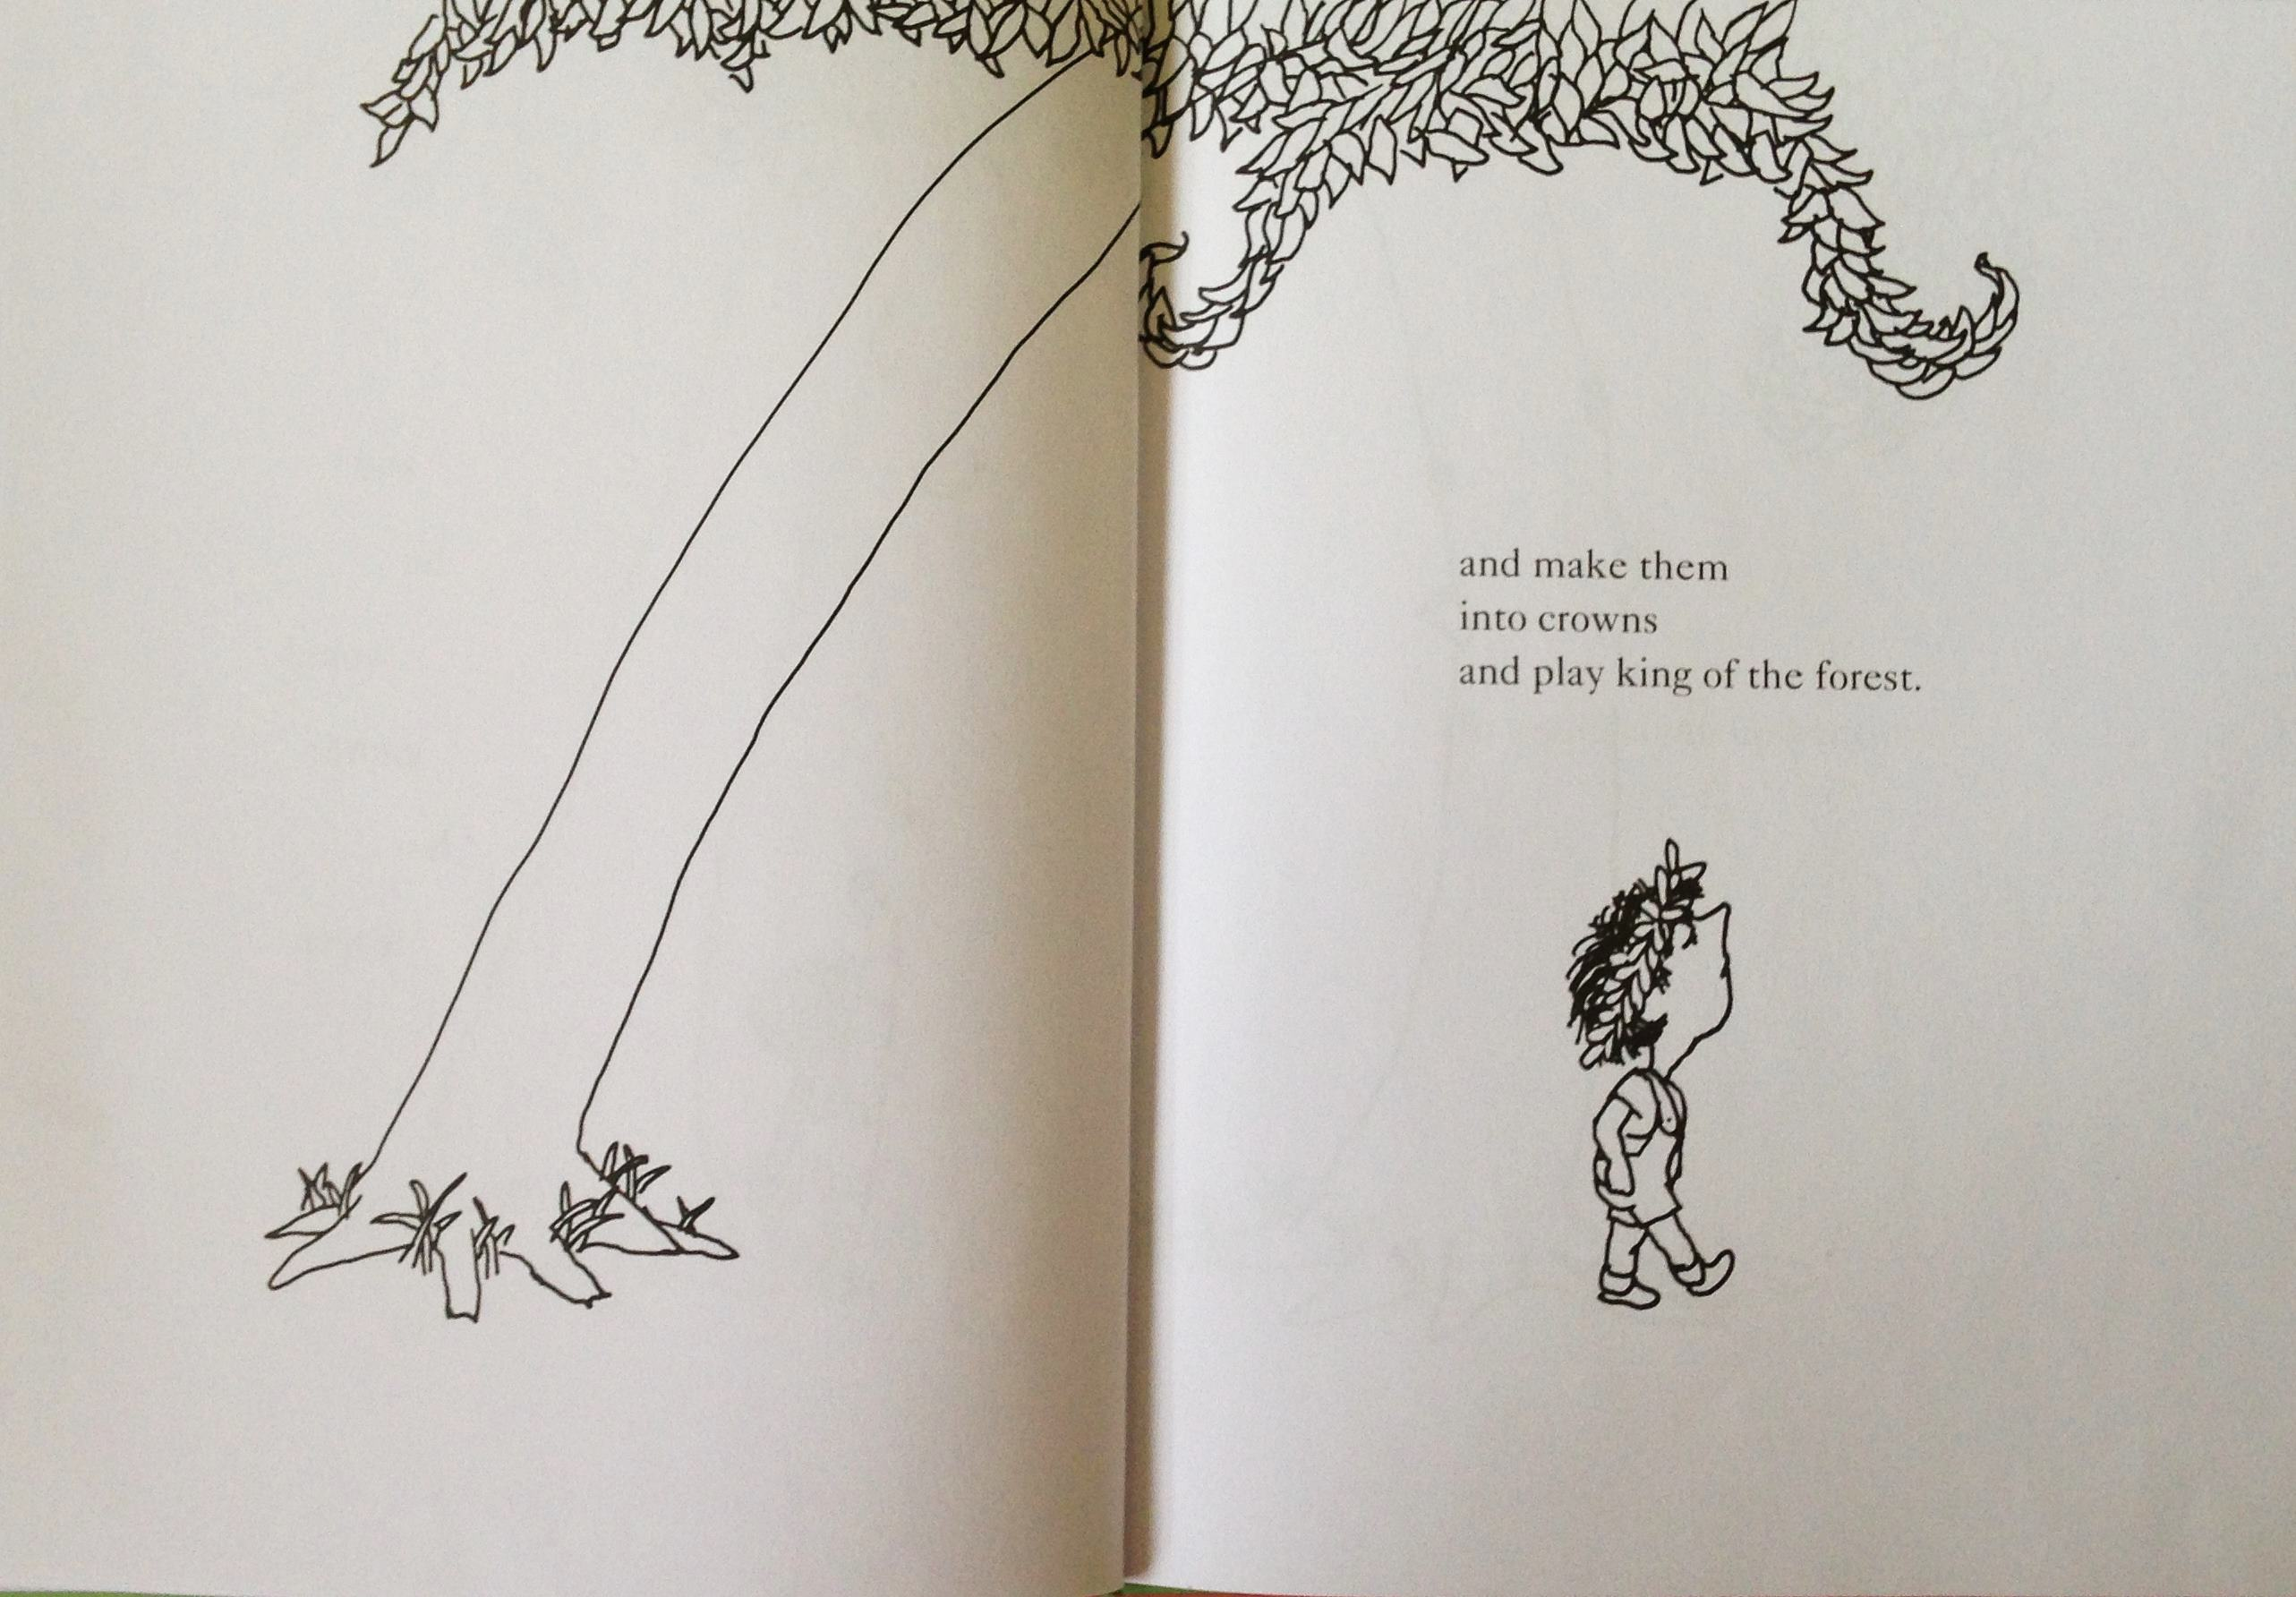 Cömert Ağaç -Giving Tree by Shel Silverstein (5)